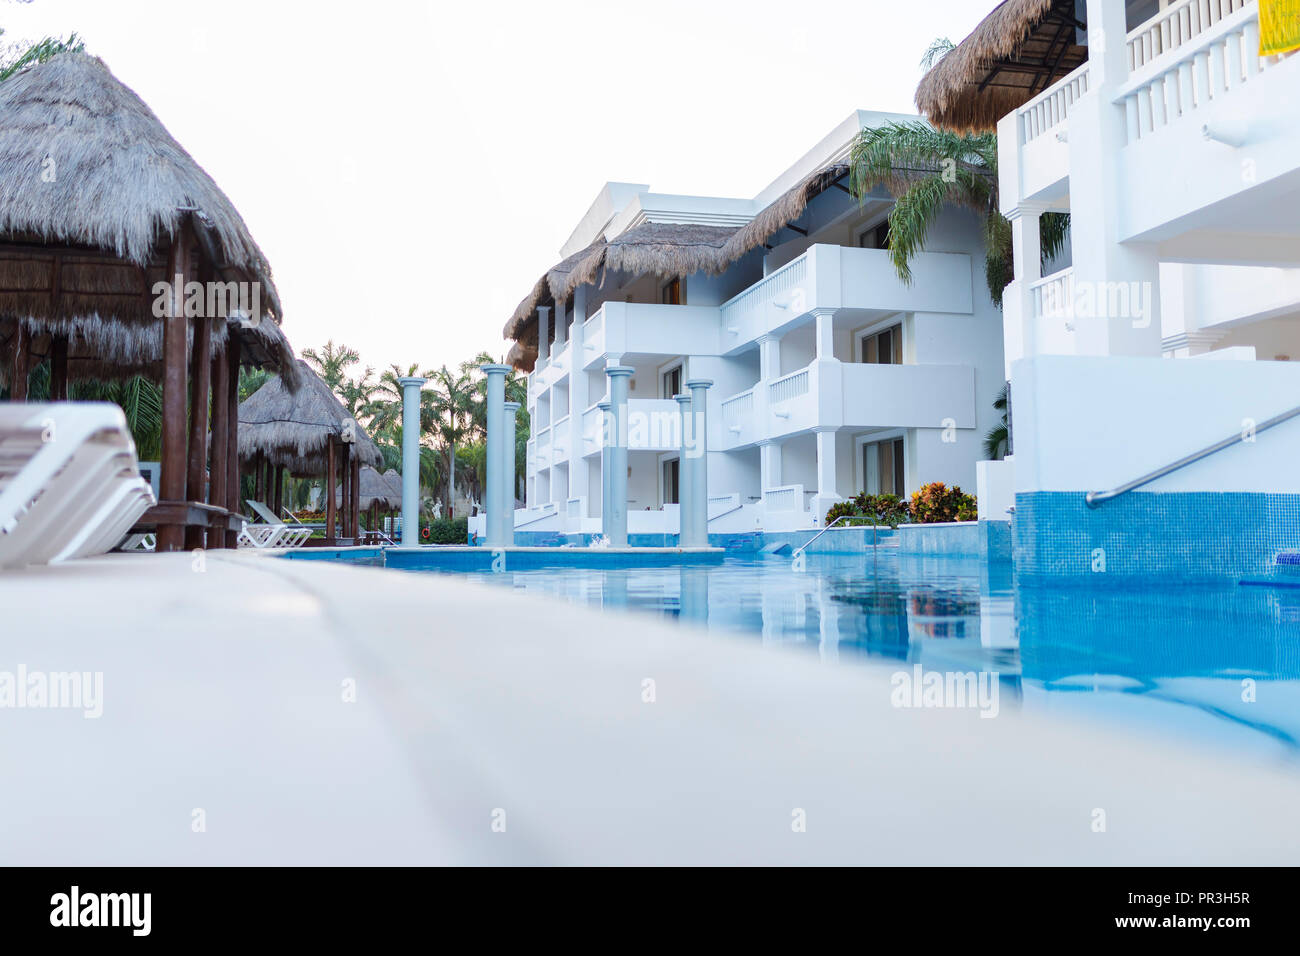 Grand Riviera Princess Hotel in Mexico Riviera Maya on 24th July 2018. Low down shot of this All Inclusive Hotel exterior at sunset in the late aftern - Stock Image